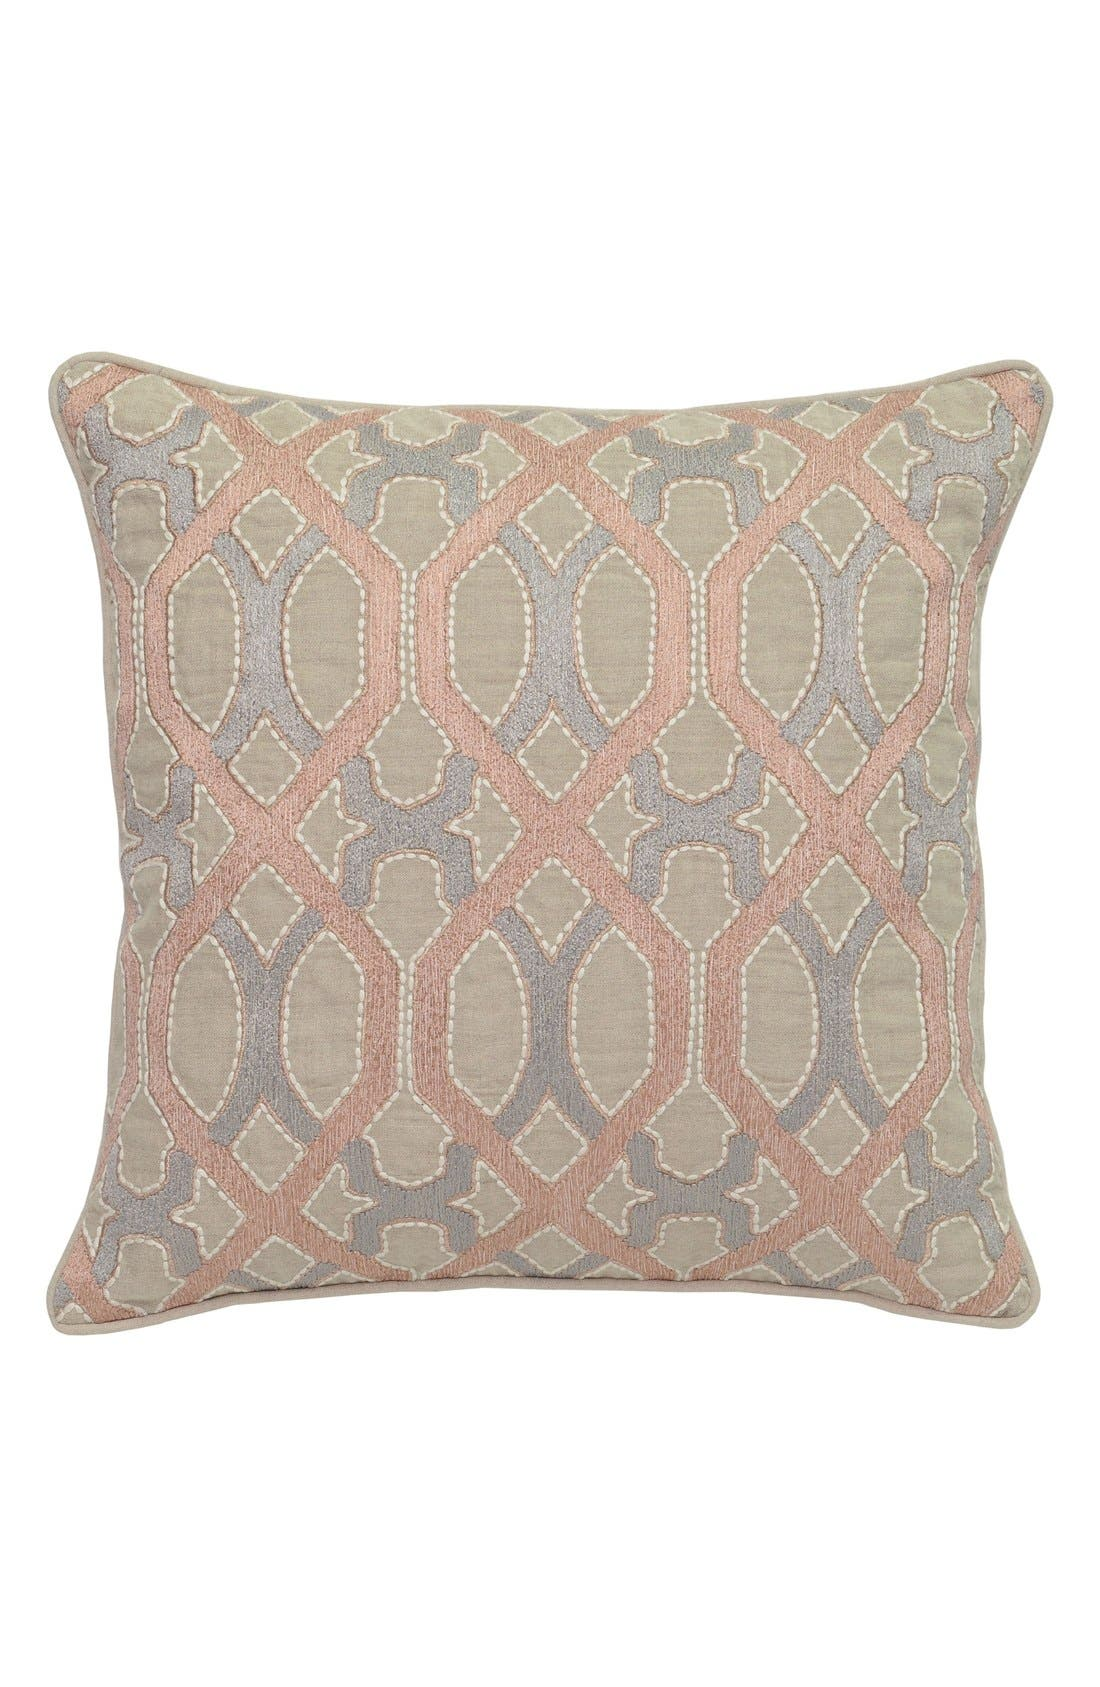 Alternate Image 1 Selected - Villa Home Collection 'Lois' Accent Pillow